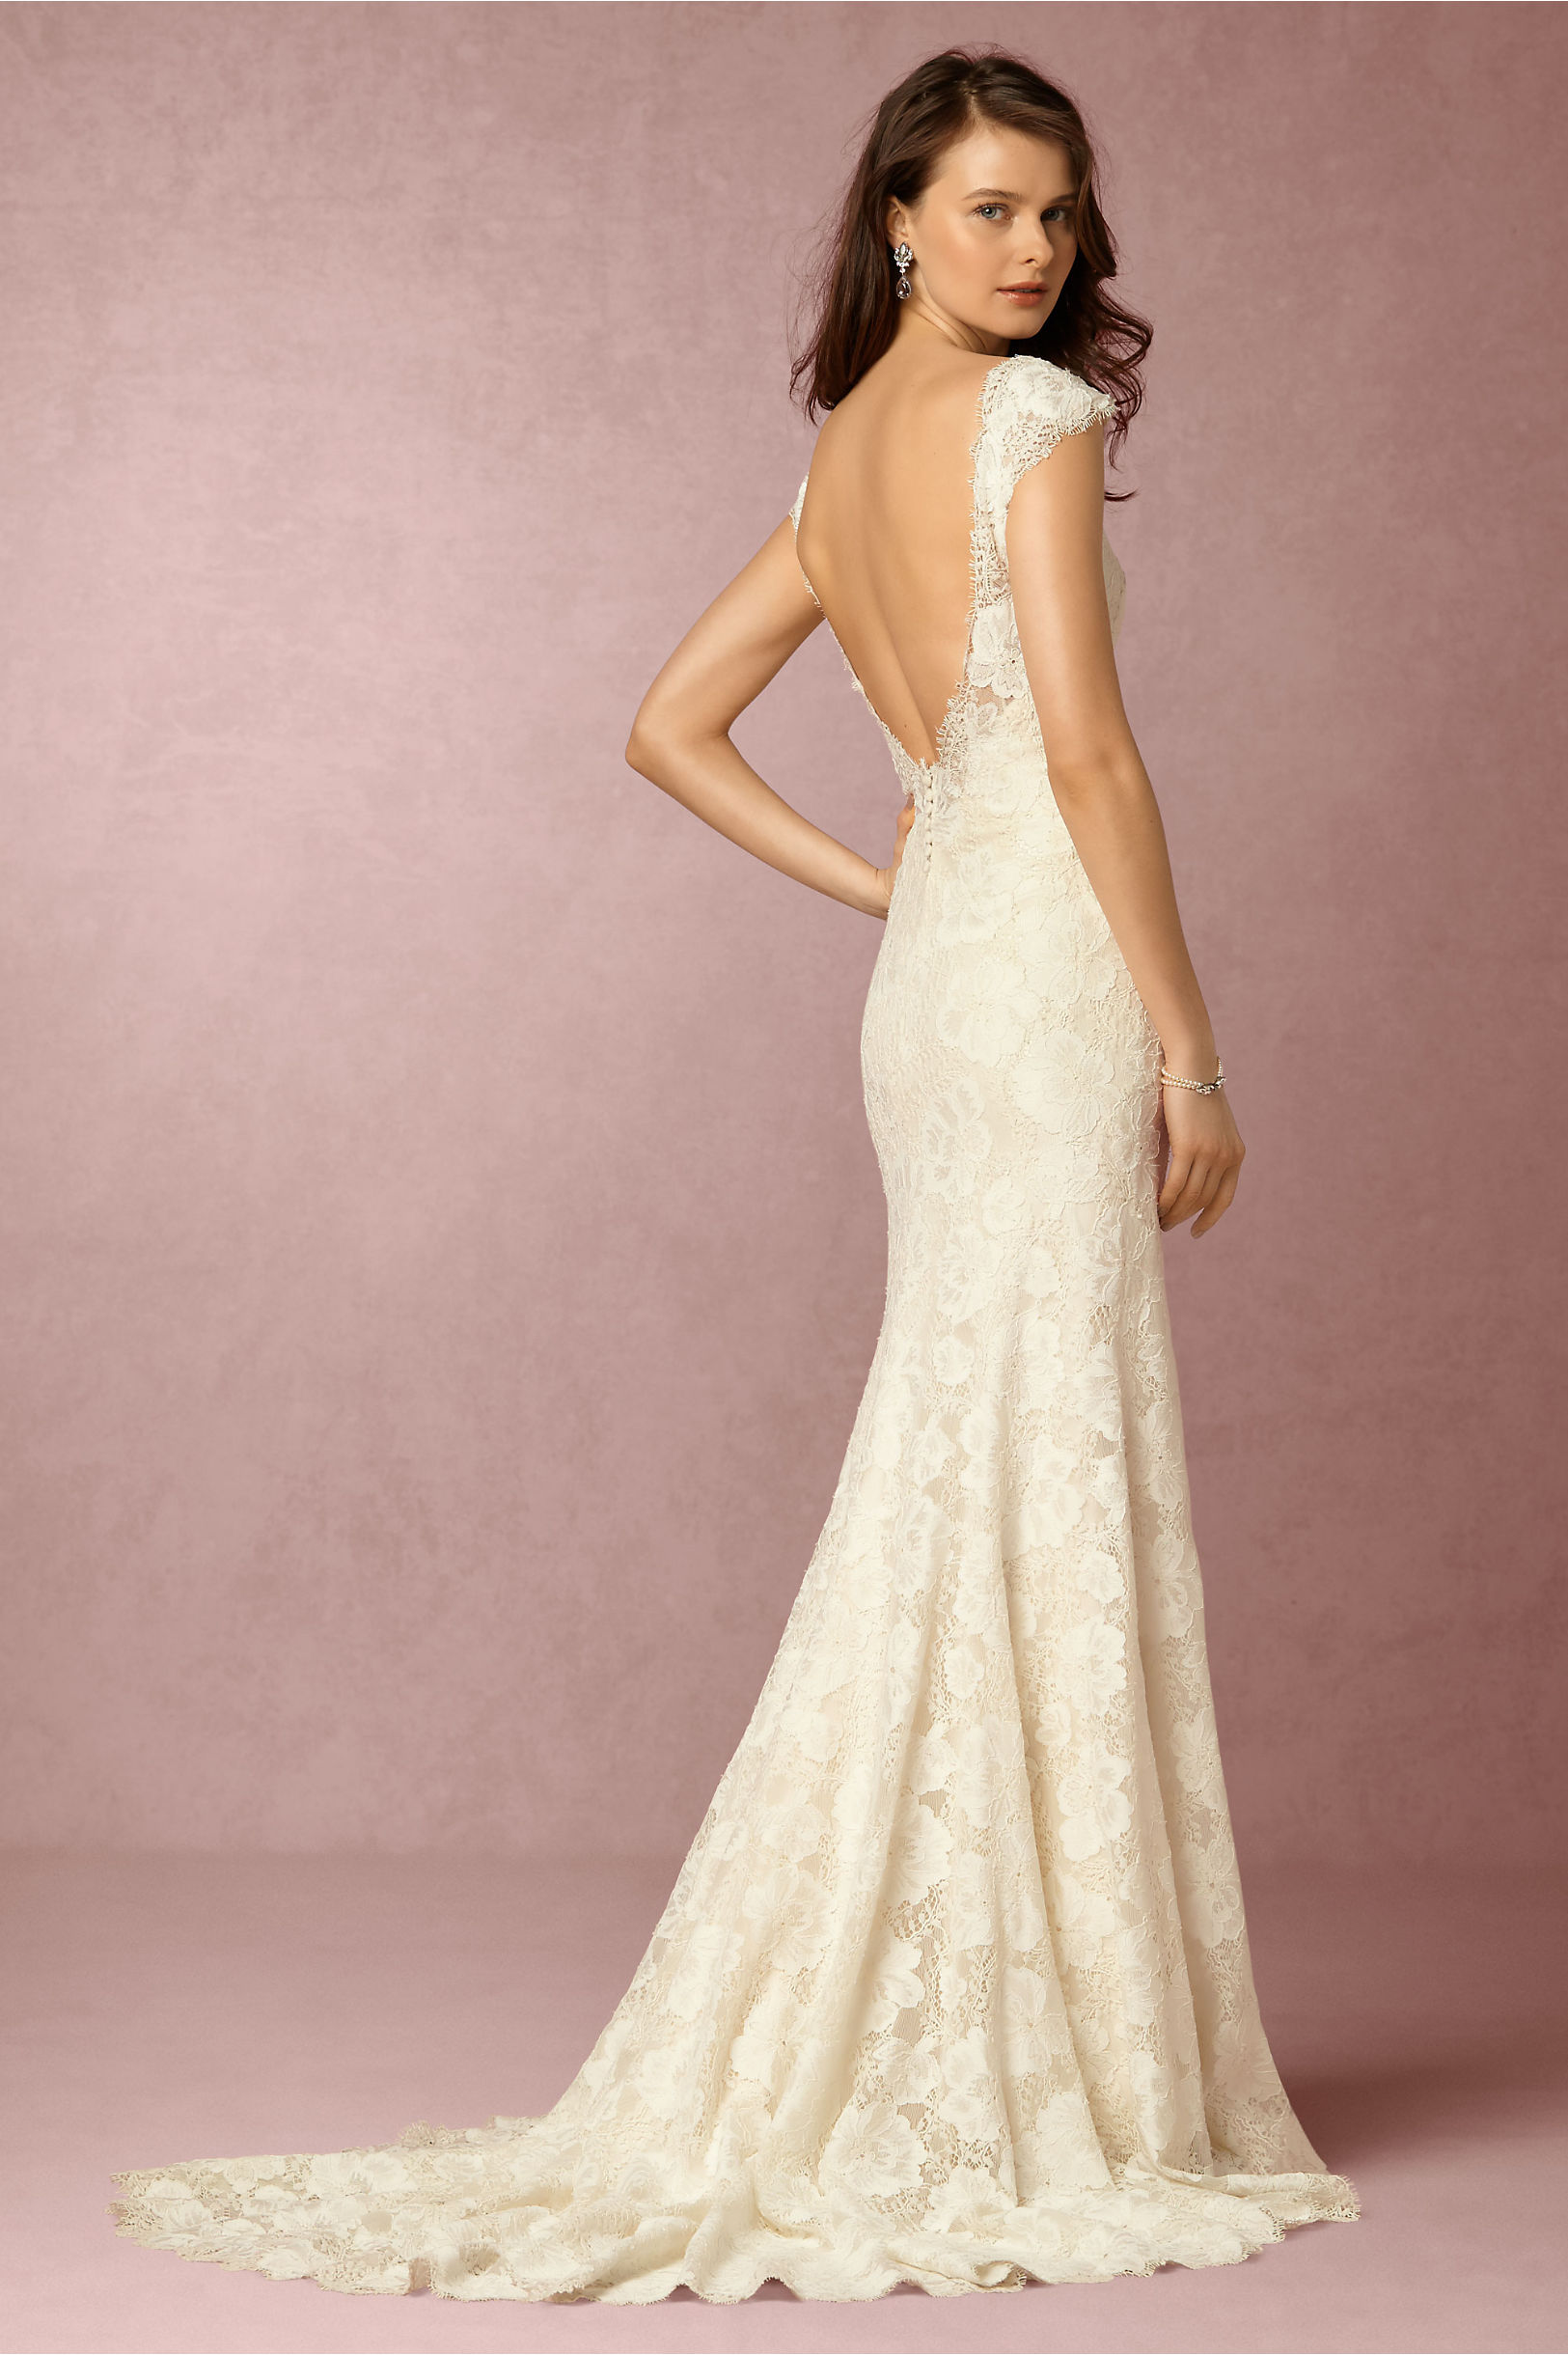 Eddy K Cream Amalia Gown Bhldn